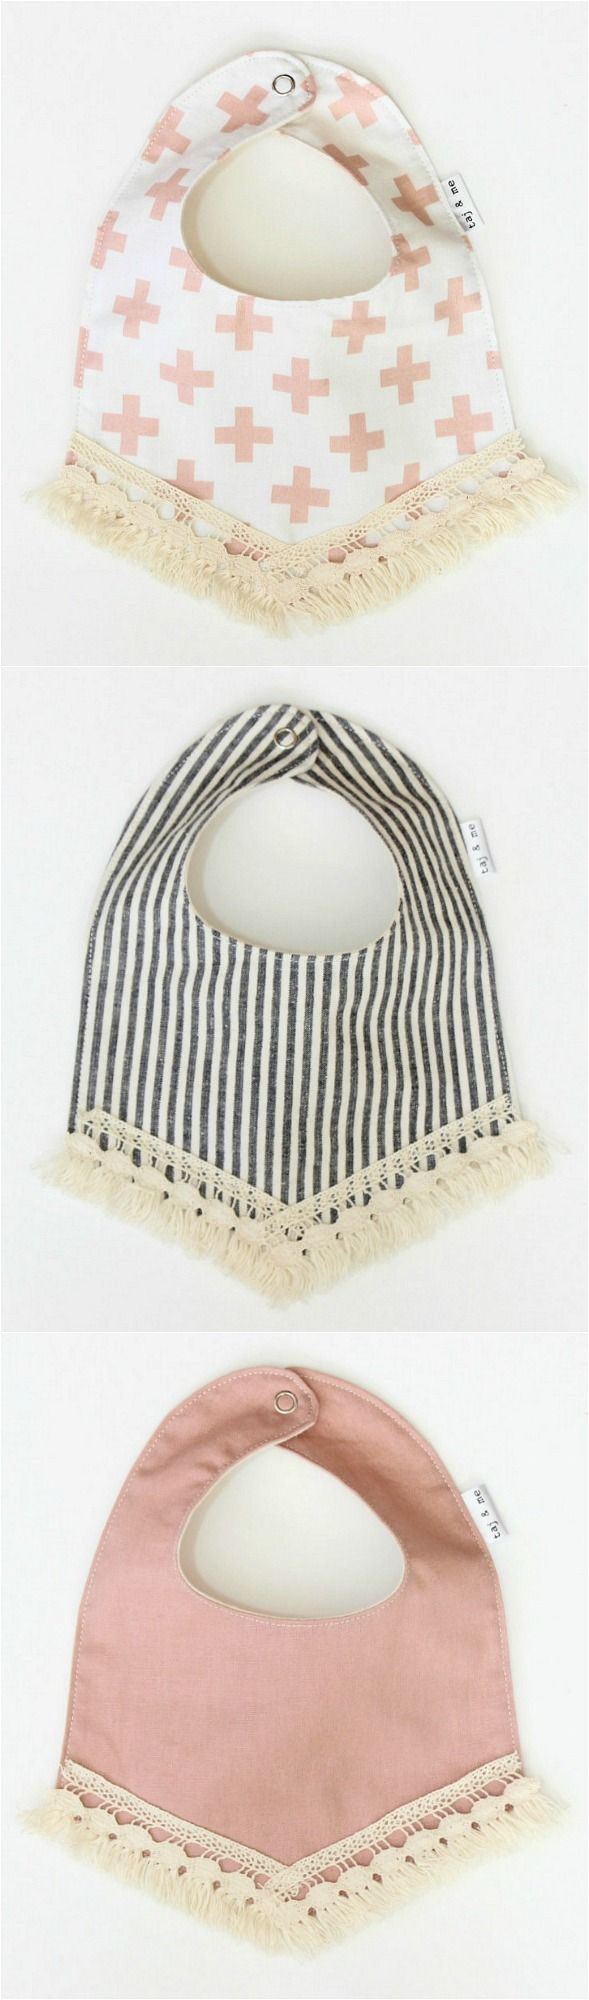 Fringed Boho Baby Bibs | TajandMe on Etsy